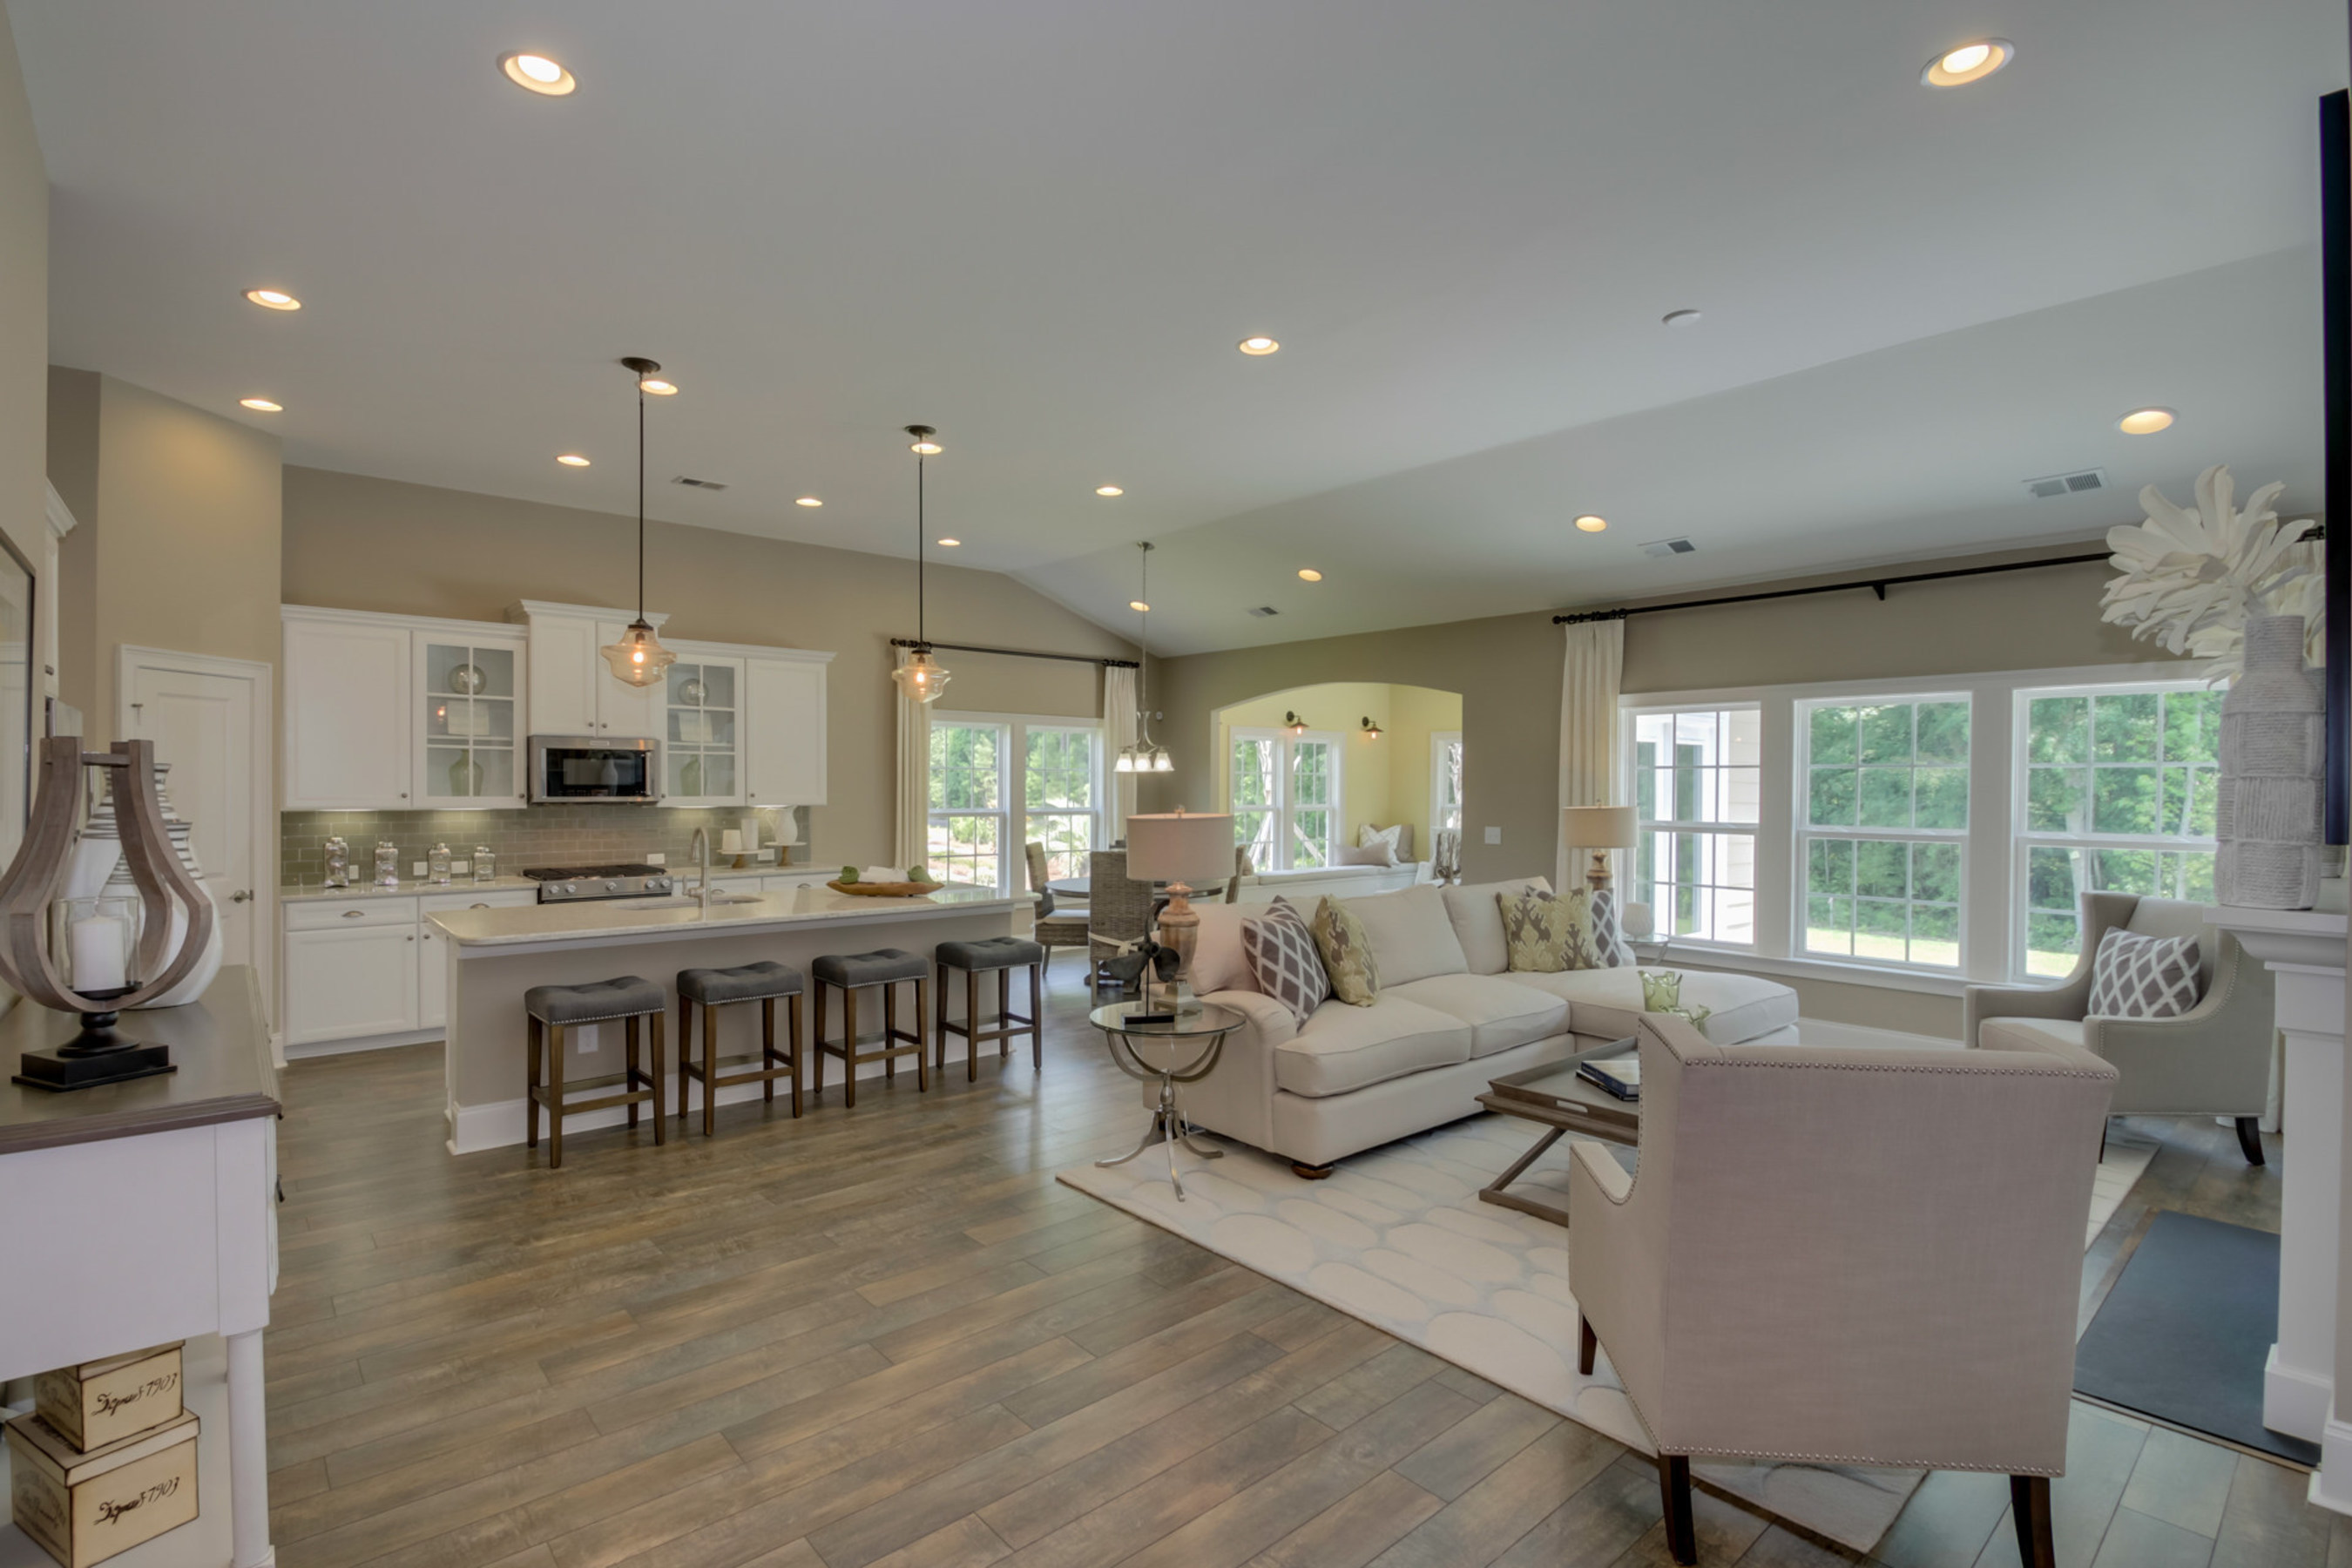 CalAtlantic Homes Debuts The Estates At Withers Preserve Creating A Highly-Desirable Residential Enclave In Myrtle Beach, SC